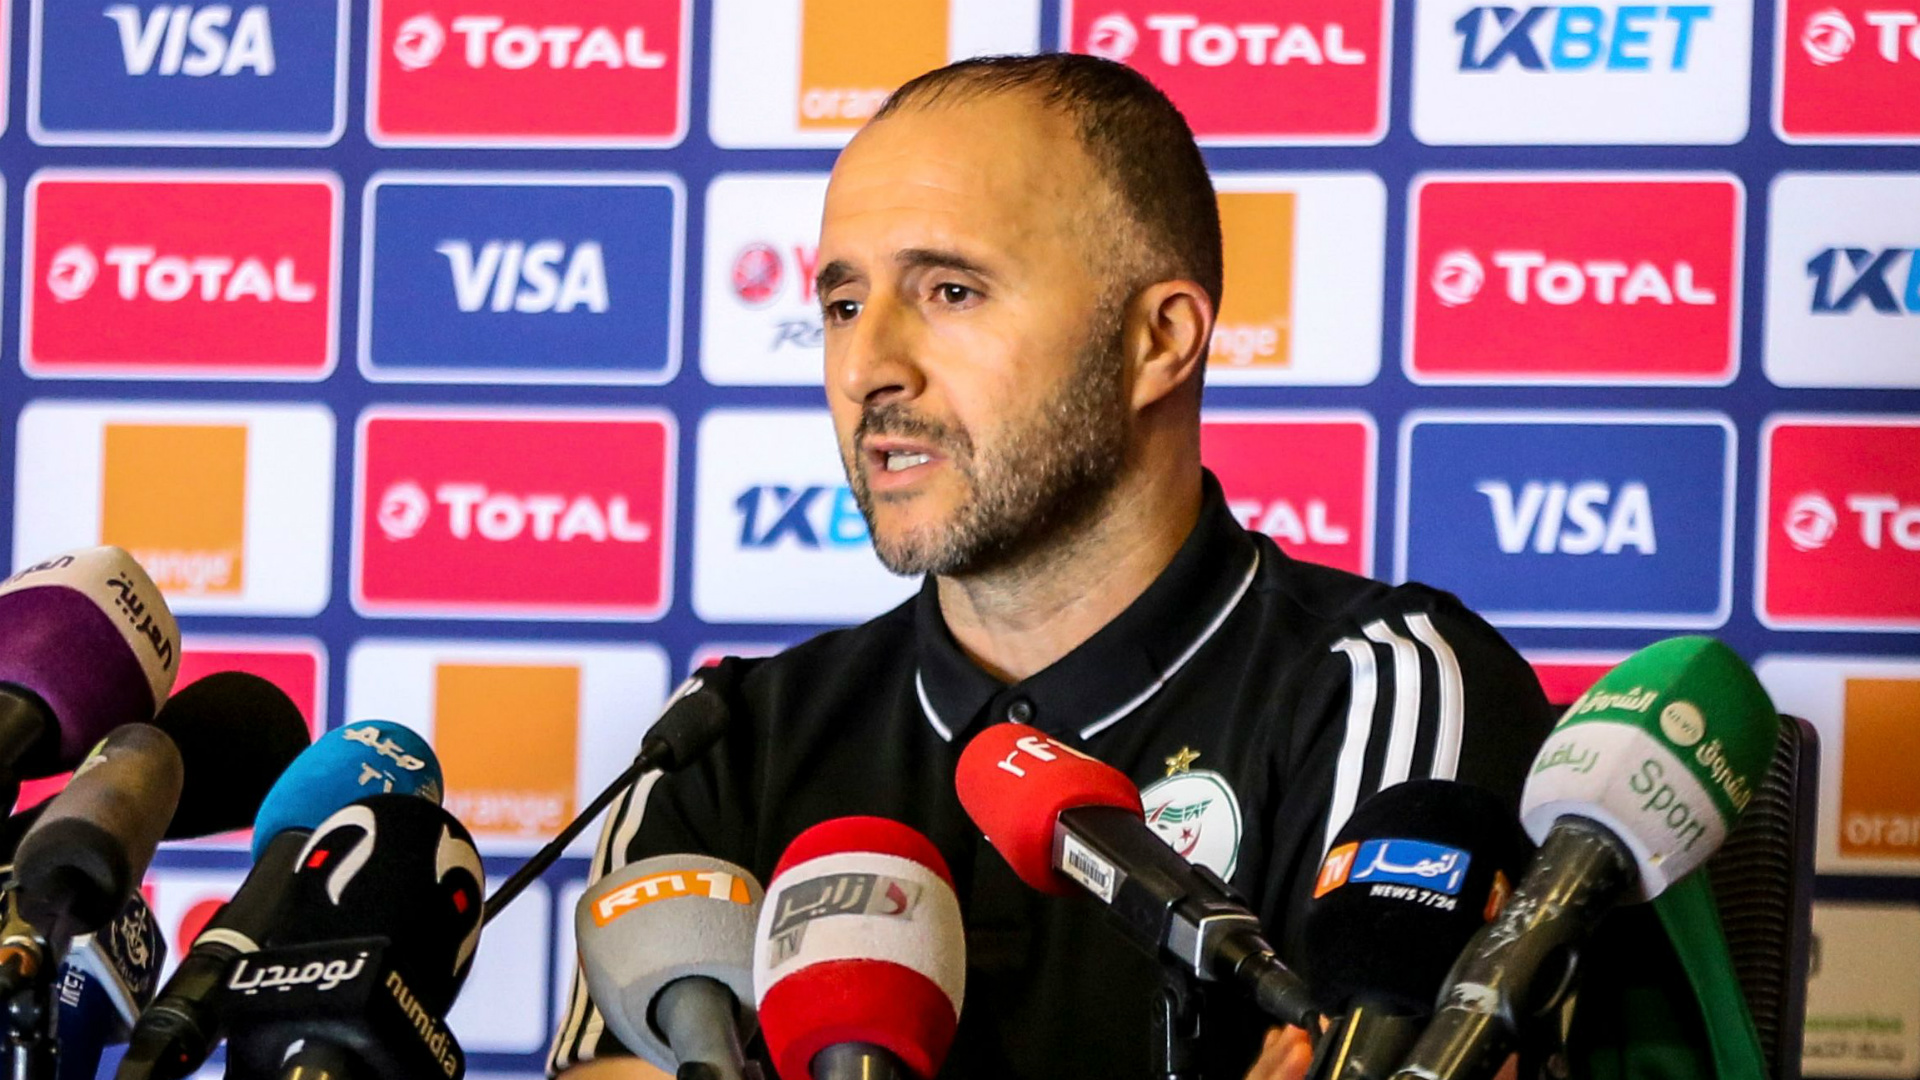 Afcon 2019: 'We want to write our own history' - Algeria coach Belmadi